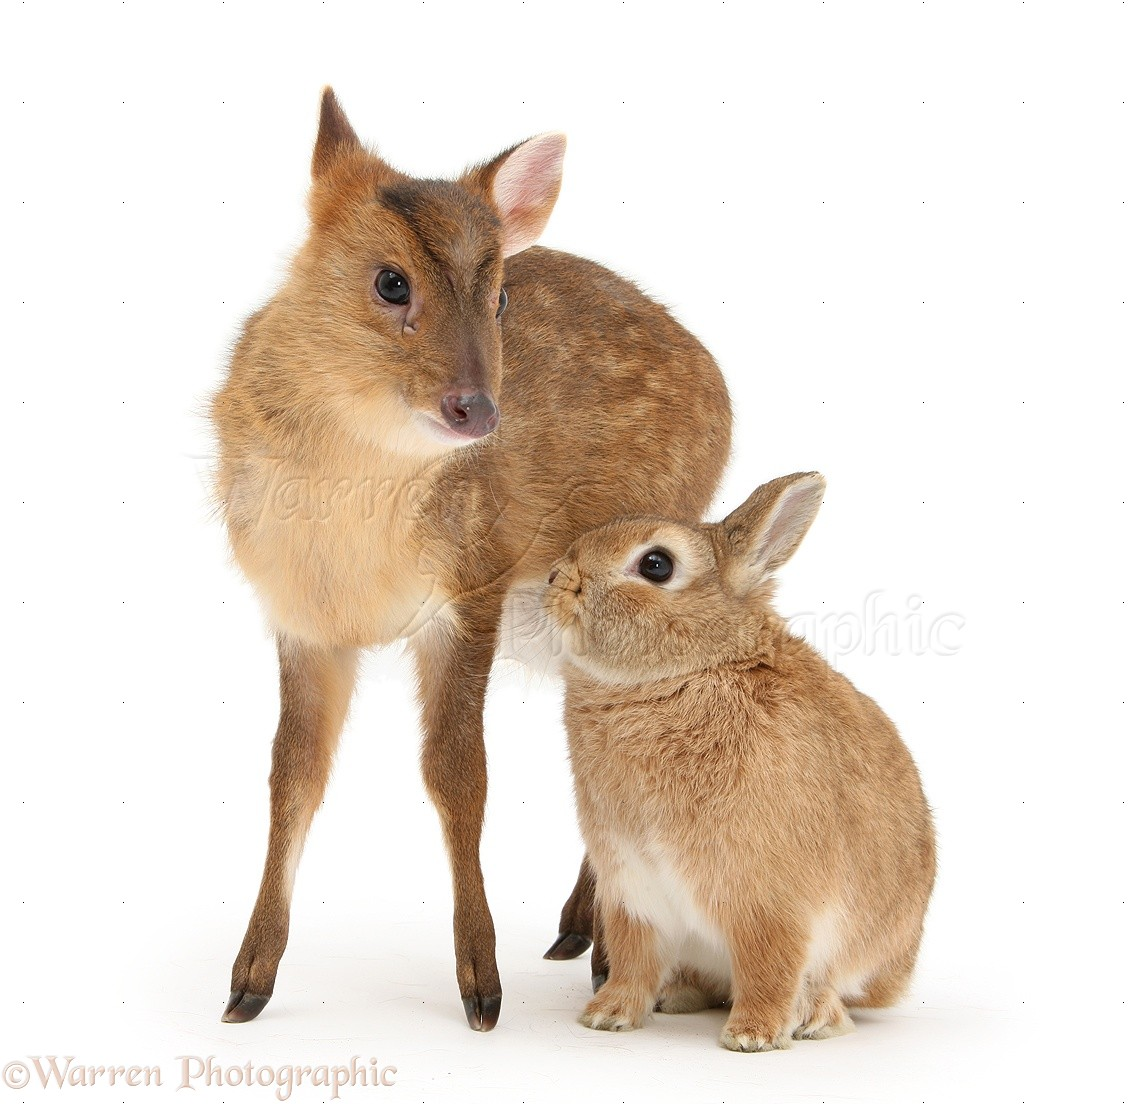 muntjac deer fawn and sandy rabbit photo wp28663